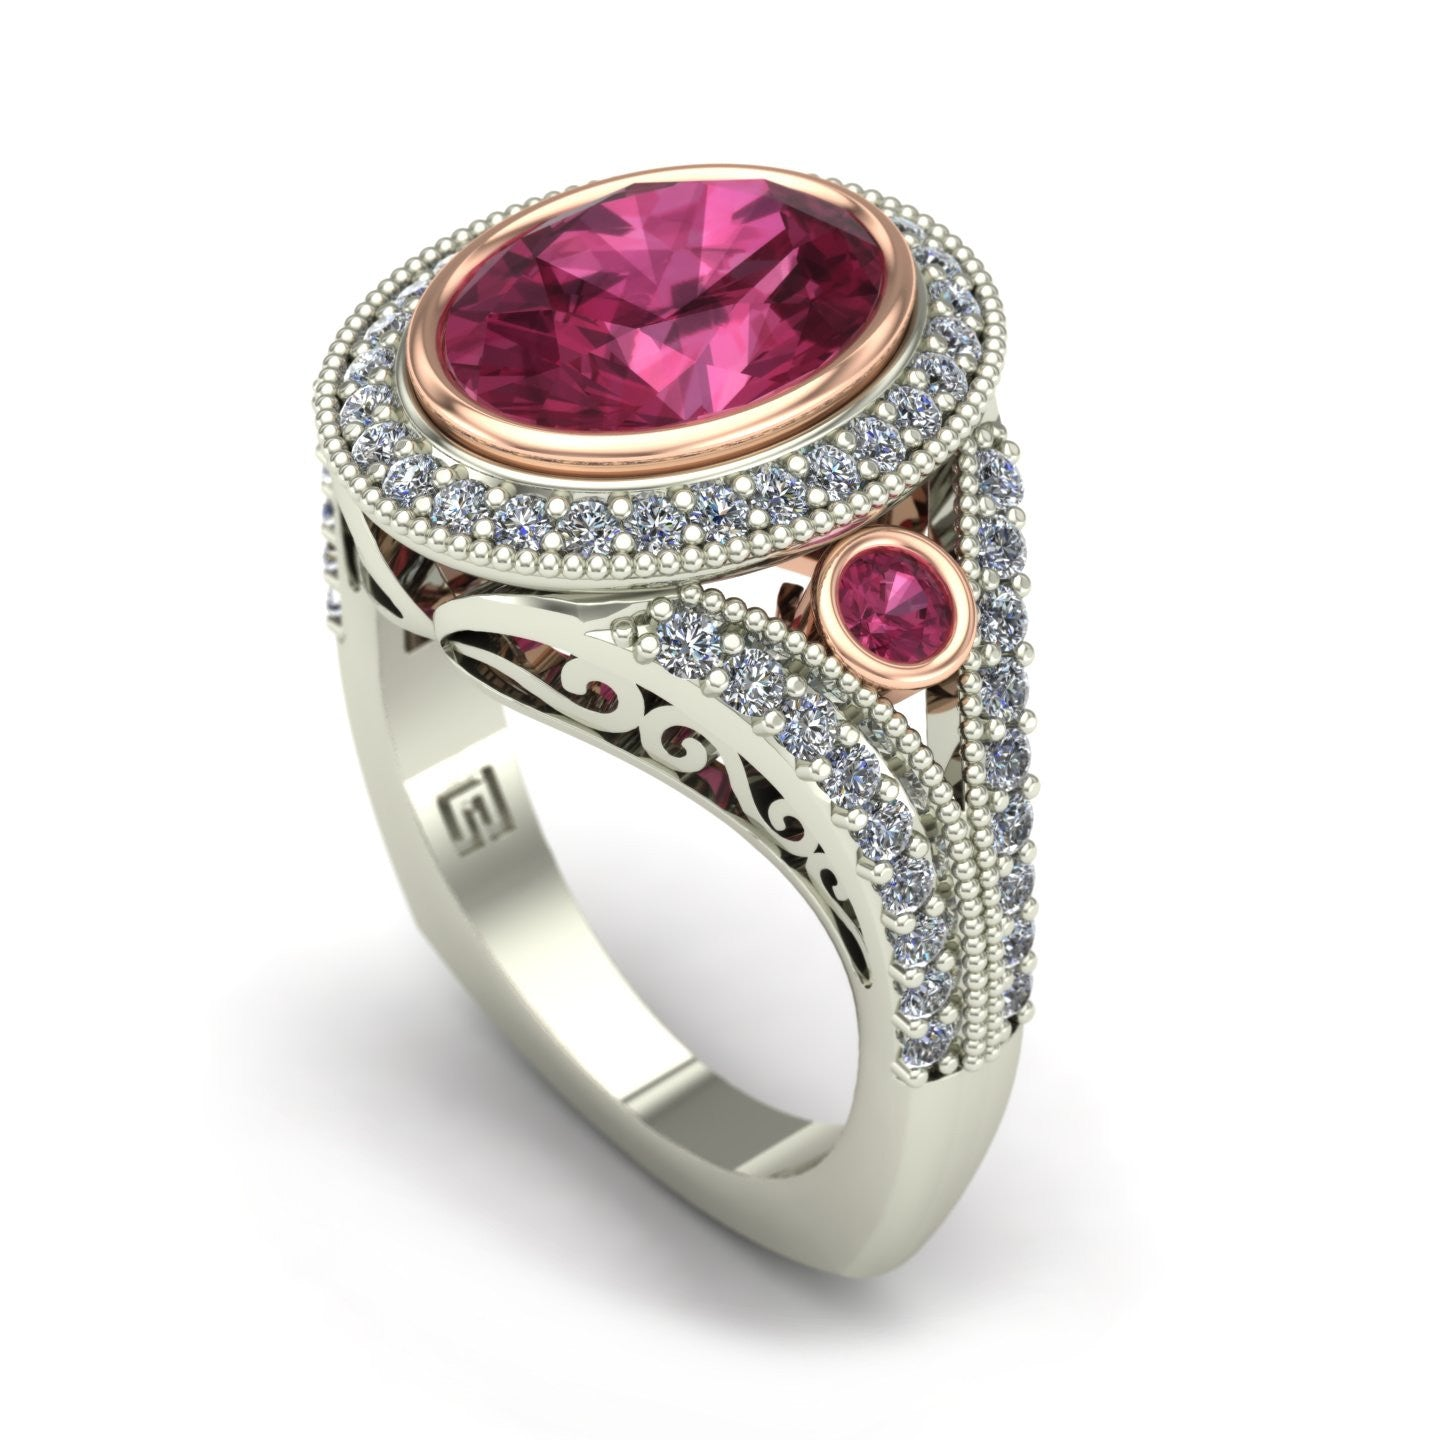 Pink tourmaline and diamond oval bezel ring in 14k rose and white gold